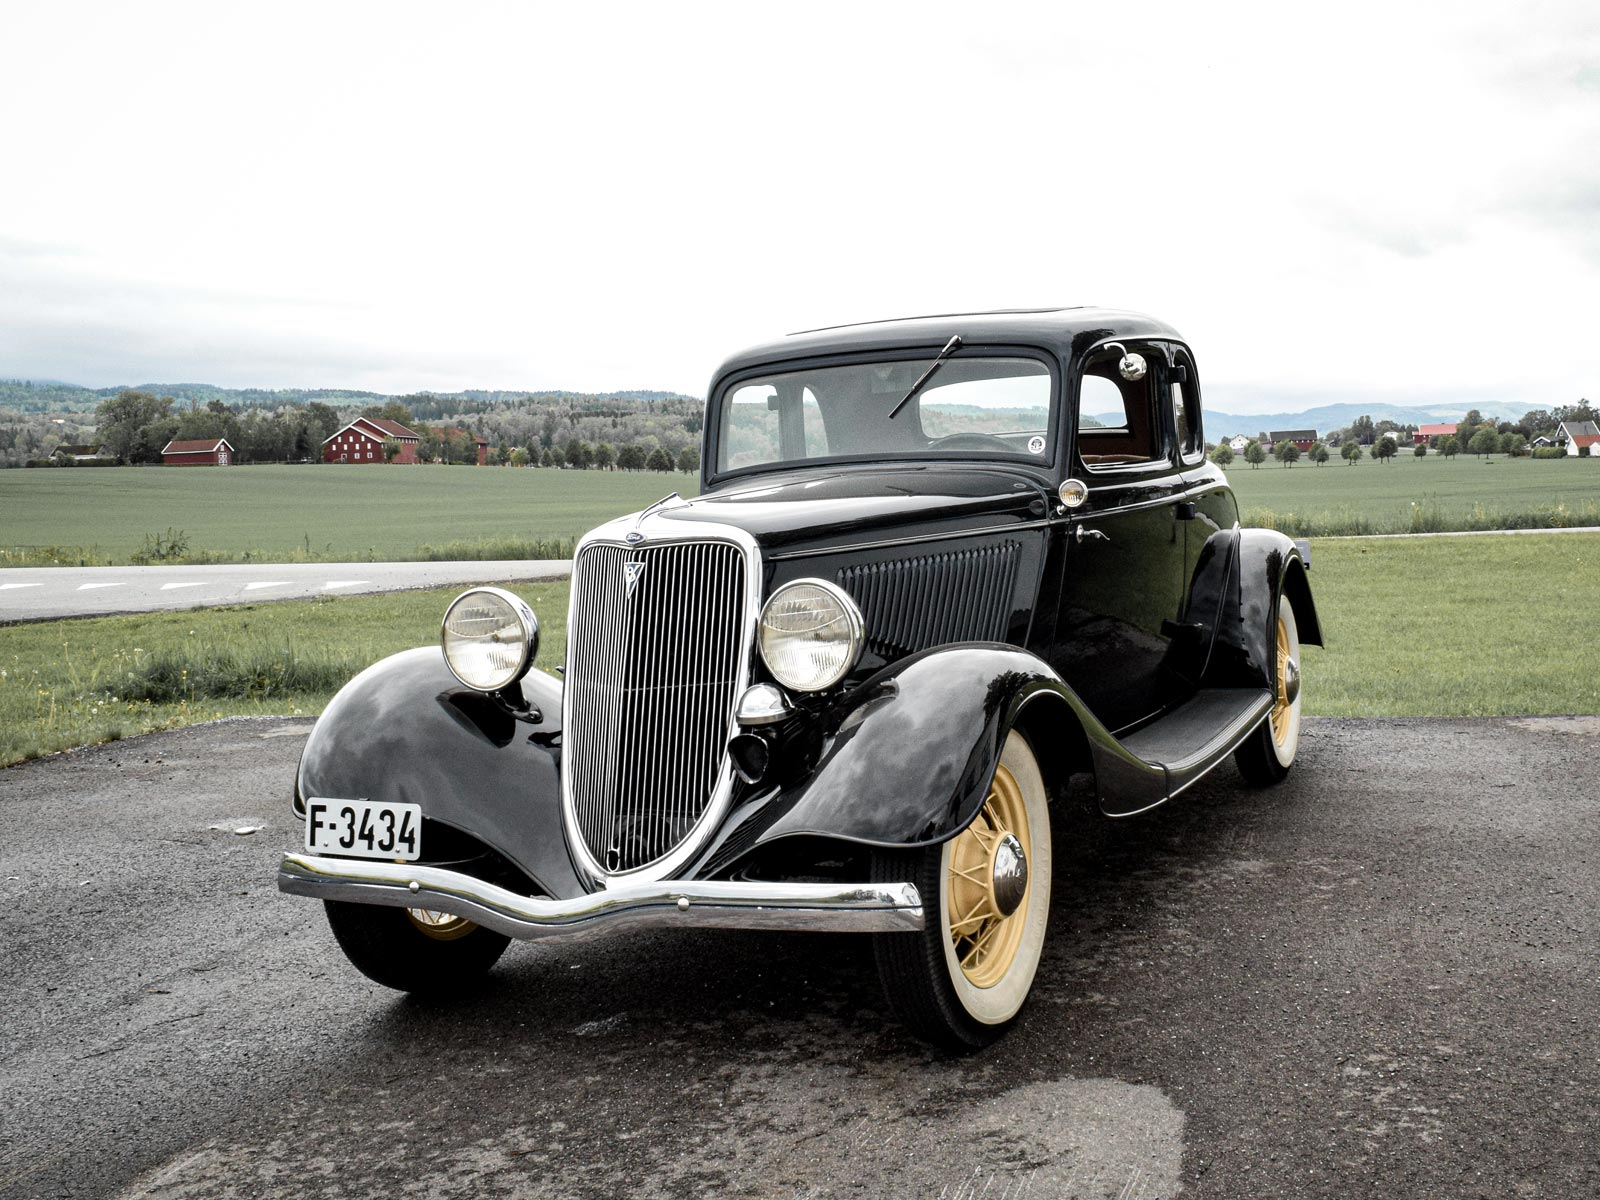 Ford B V8 Coupe 1934 modell.